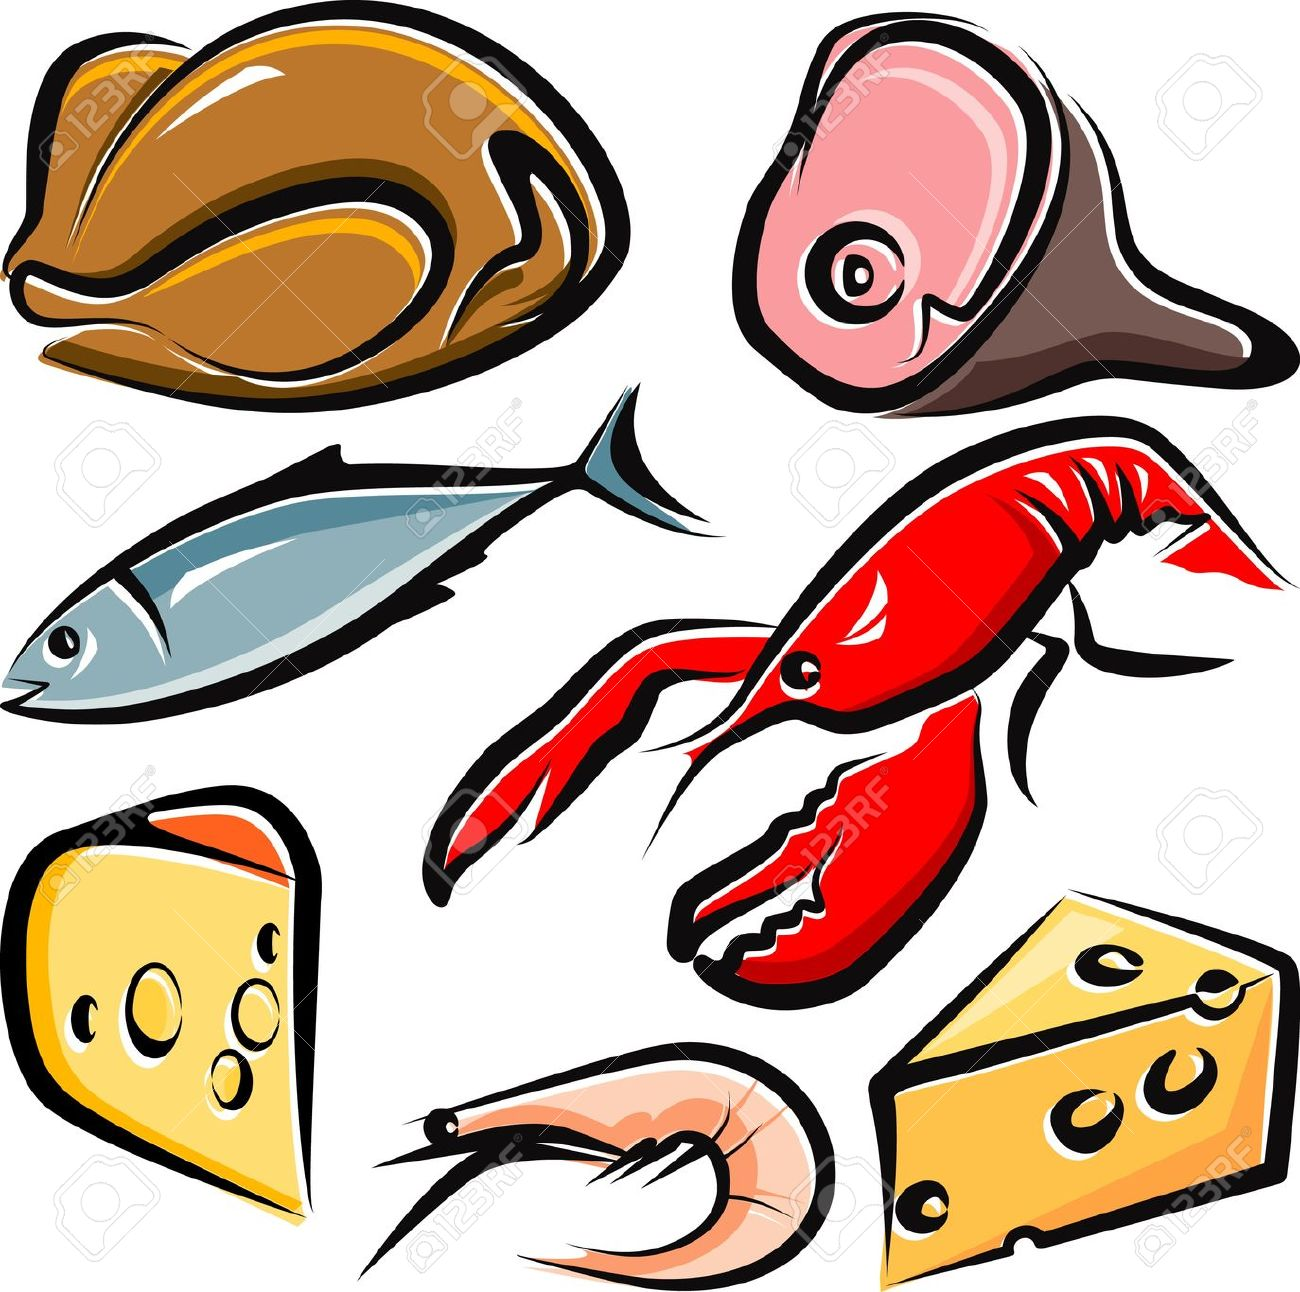 Chicken fish. Cooked clipart free download